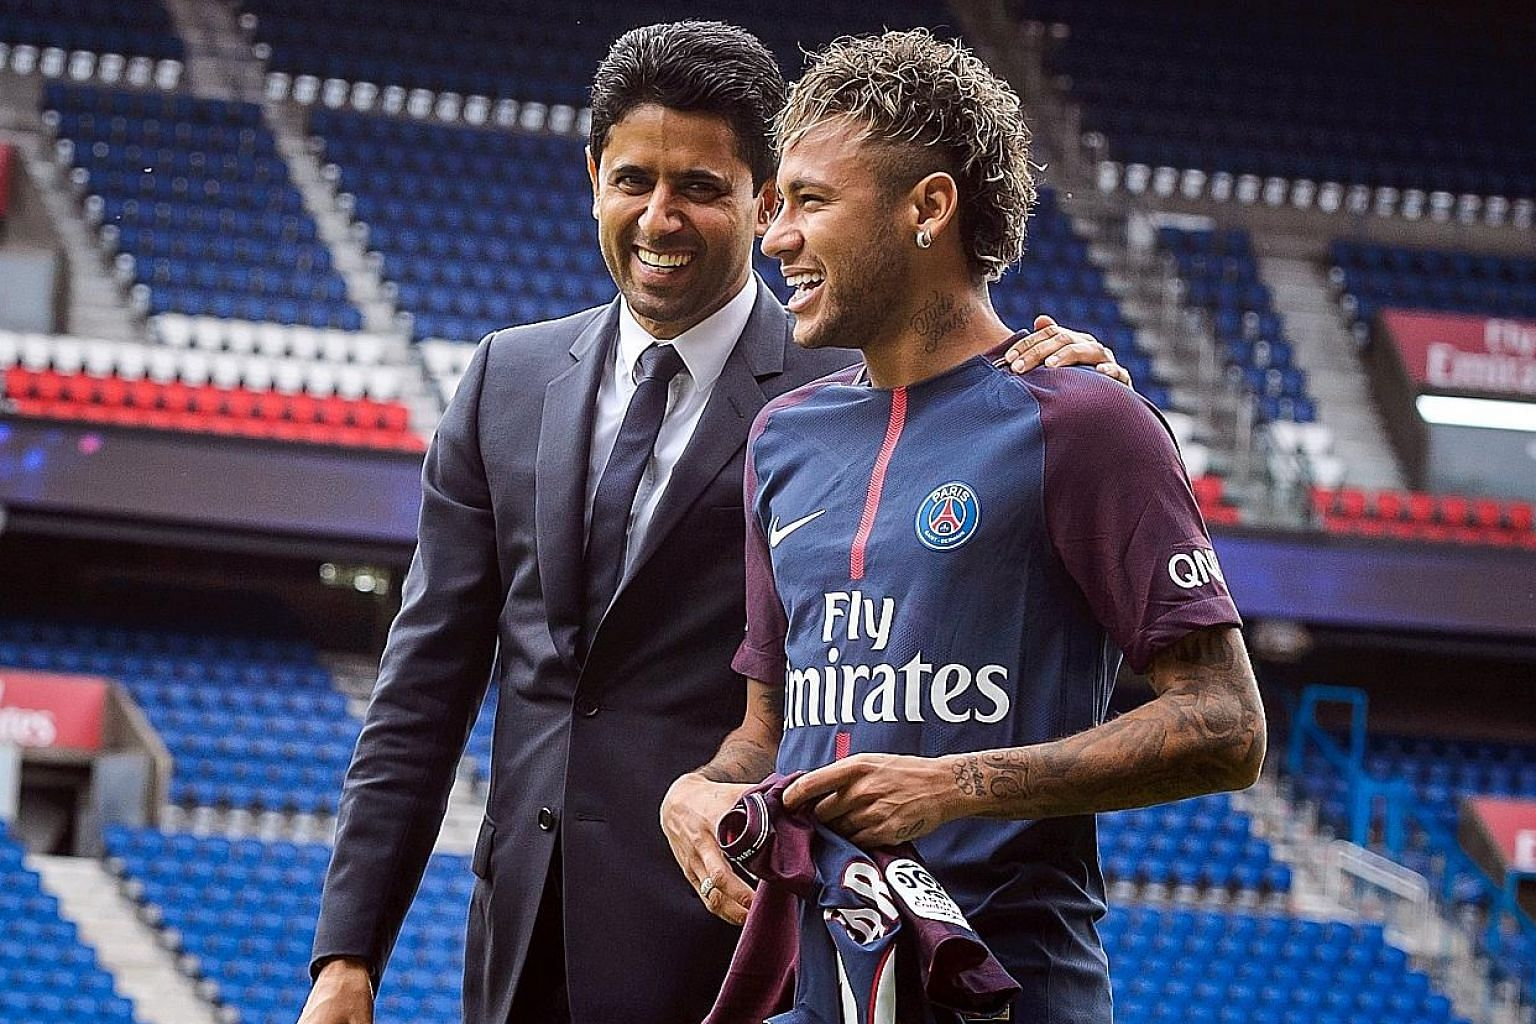 Paris-Saint Germain's chairman and chief executive Nasser Al-Khelaifi and Brazilian striker Neymar are all smiles after a press conference at the Parc des Princes stadium yesterday.